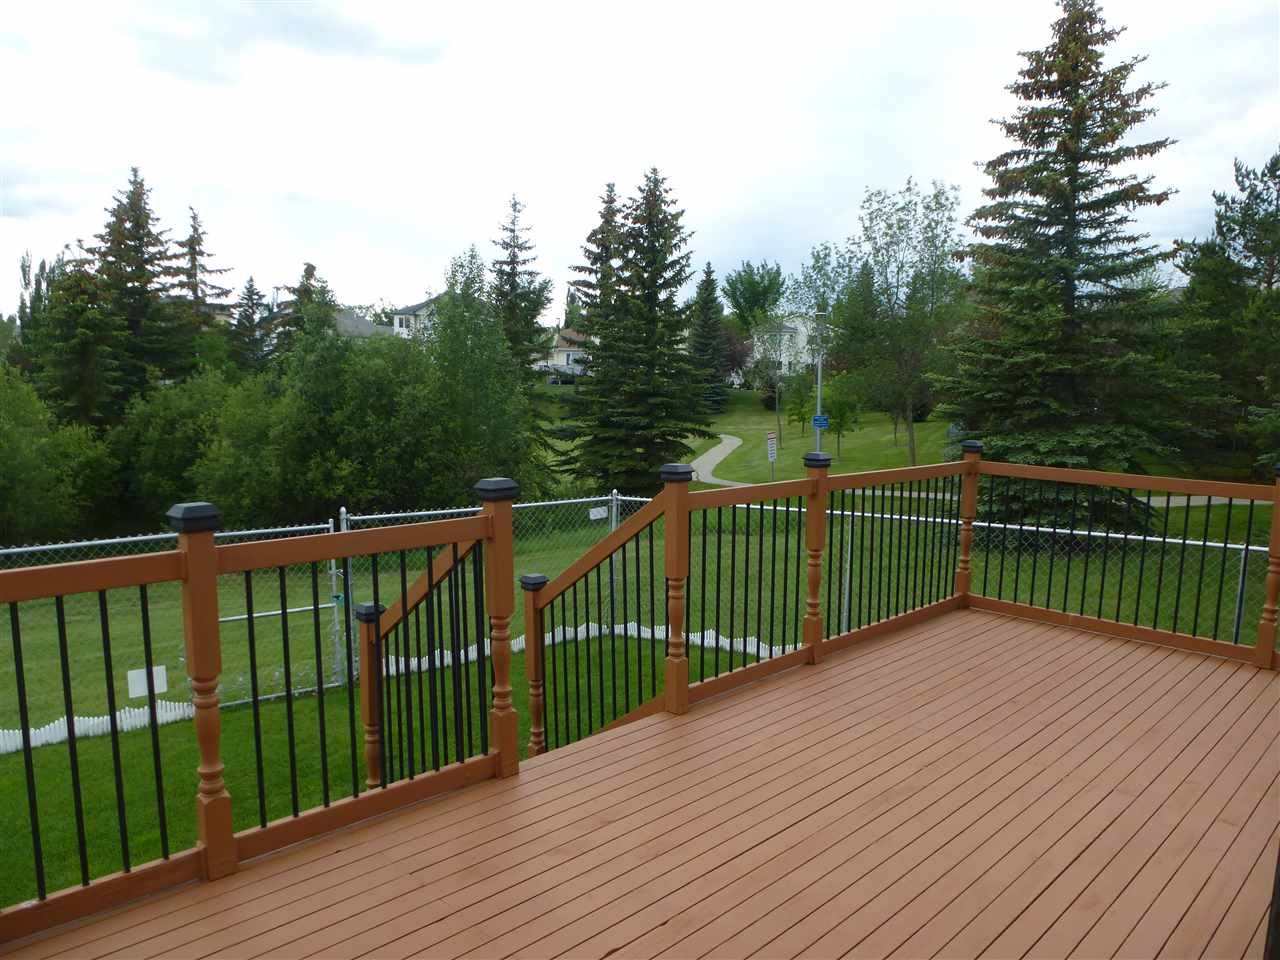 Photo 3: 315 ORMSBY Road in Edmonton: Zone 20 House for sale : MLS(r) # E4059577